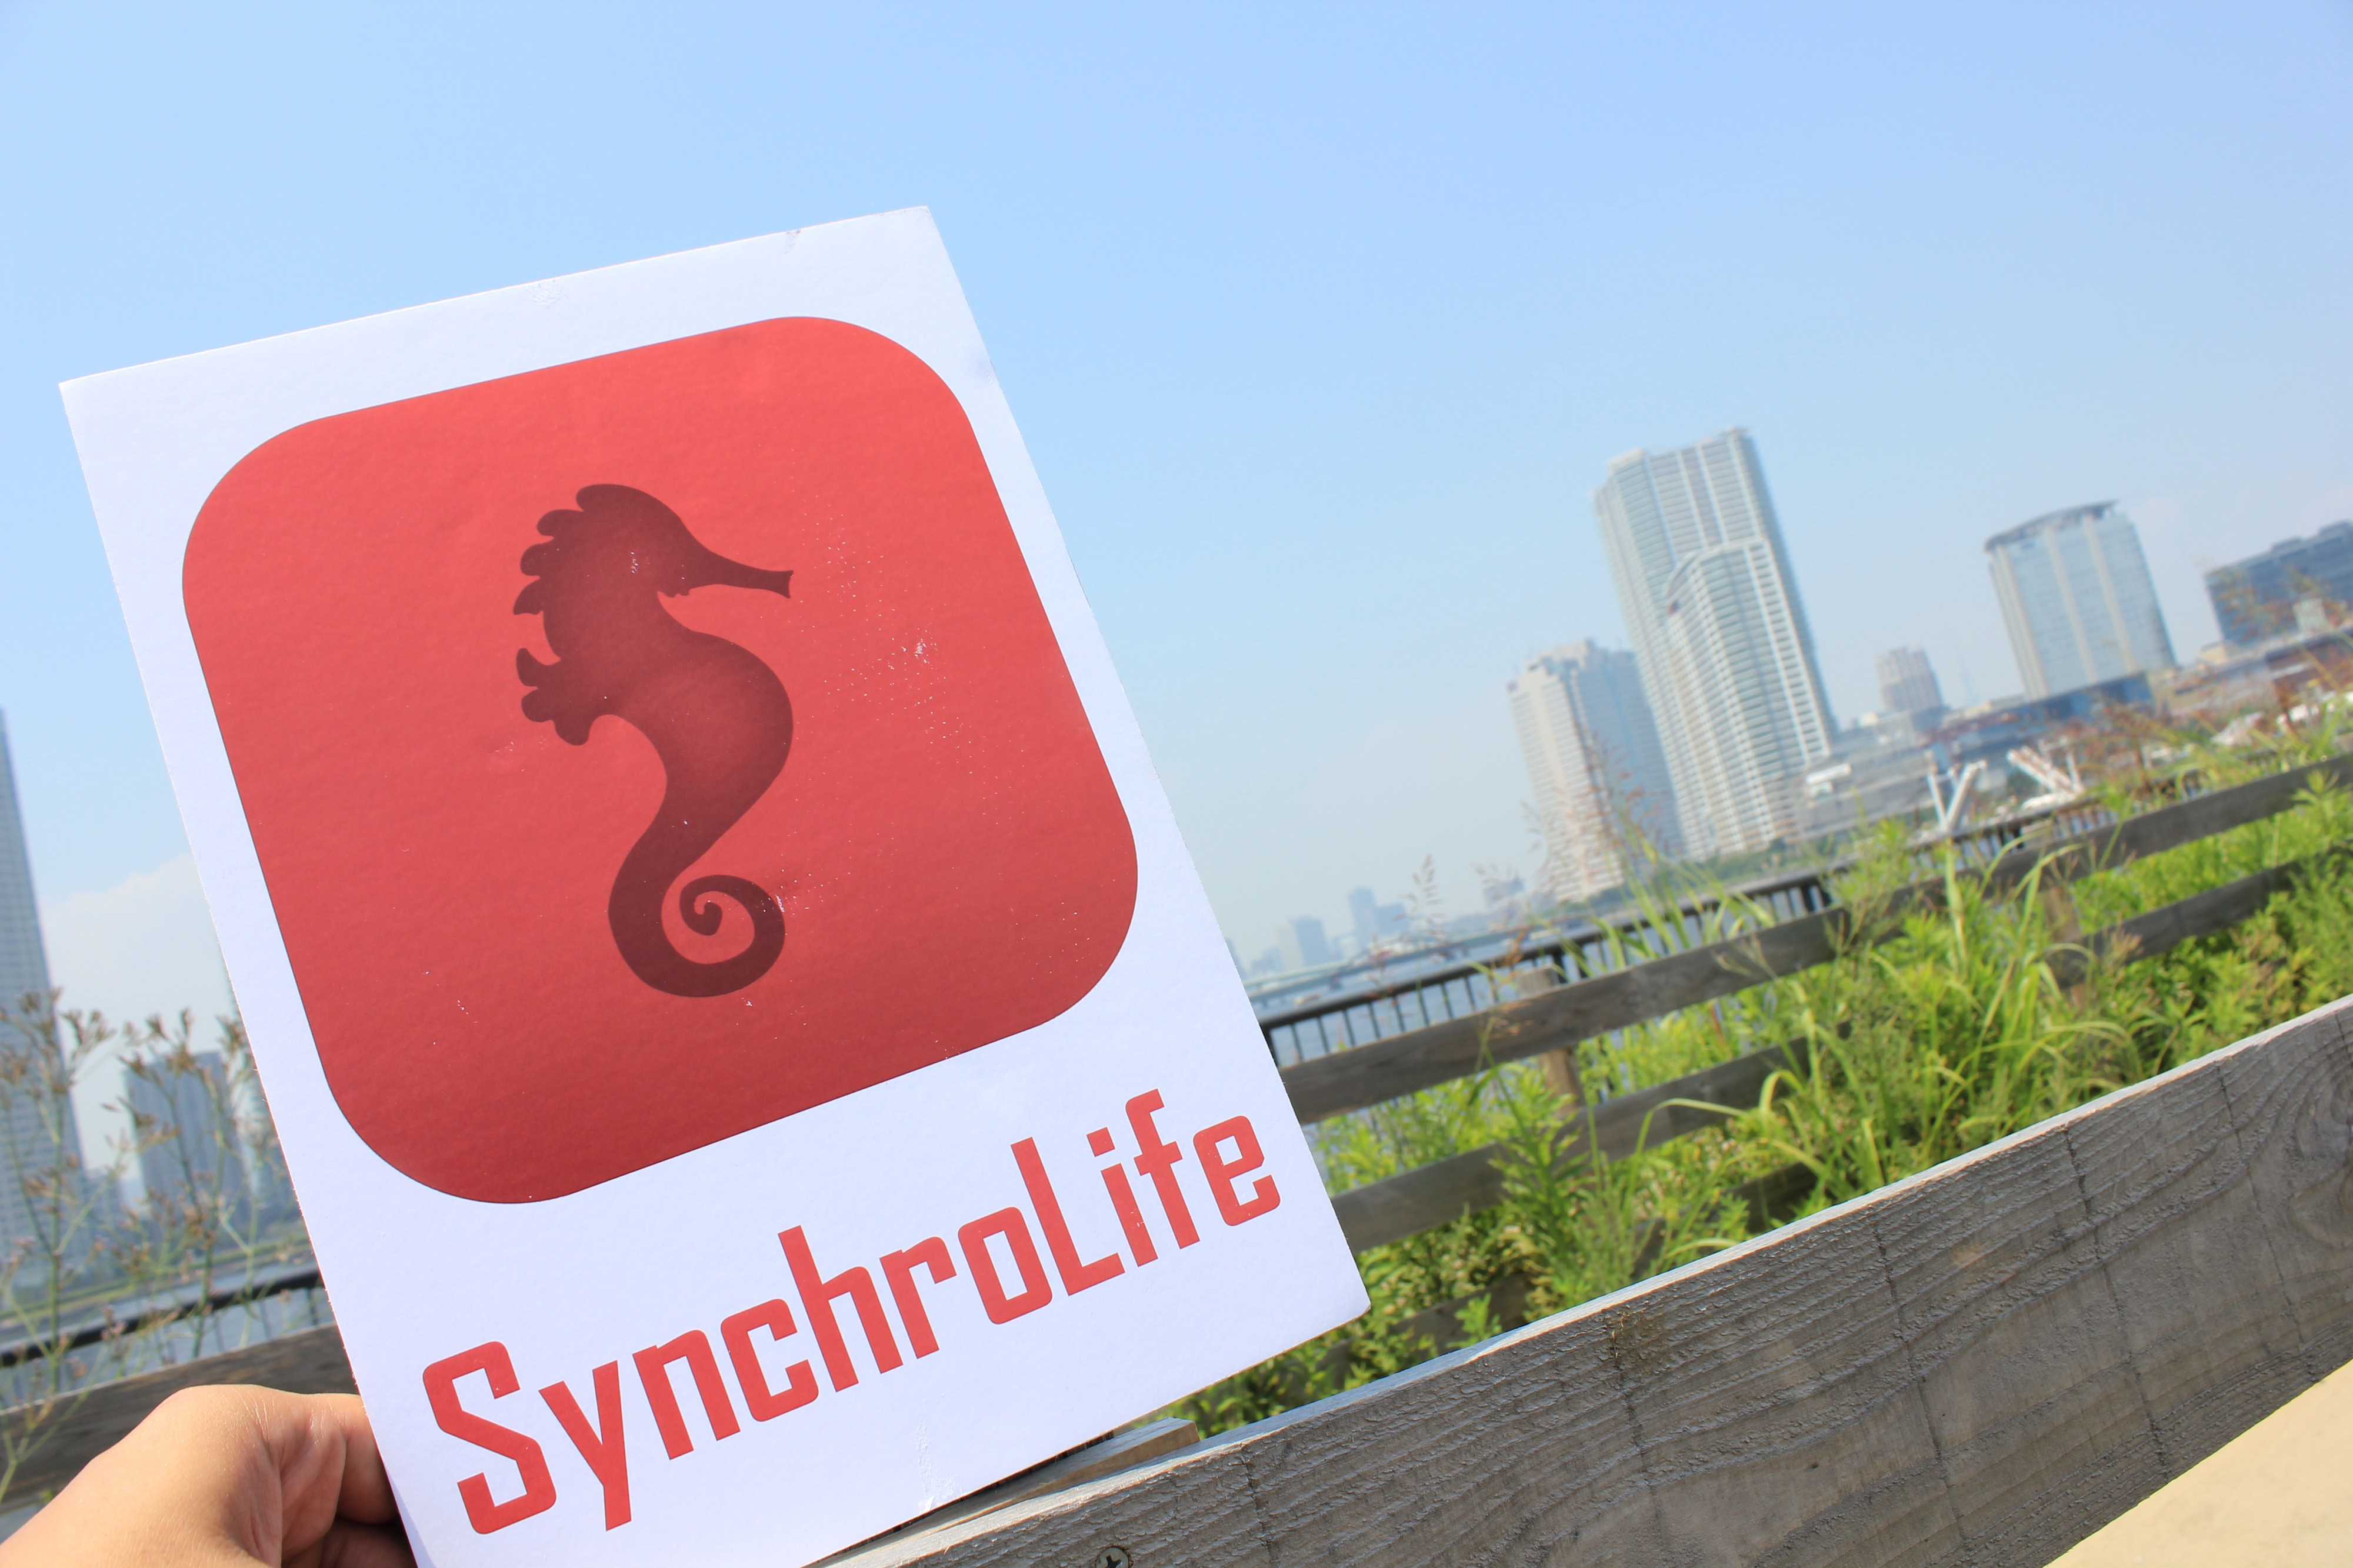 Behind The Scenes The Meaning Of Synchrolife And Our Seahorse Icon By Synchrocoin Synchrolife Medium